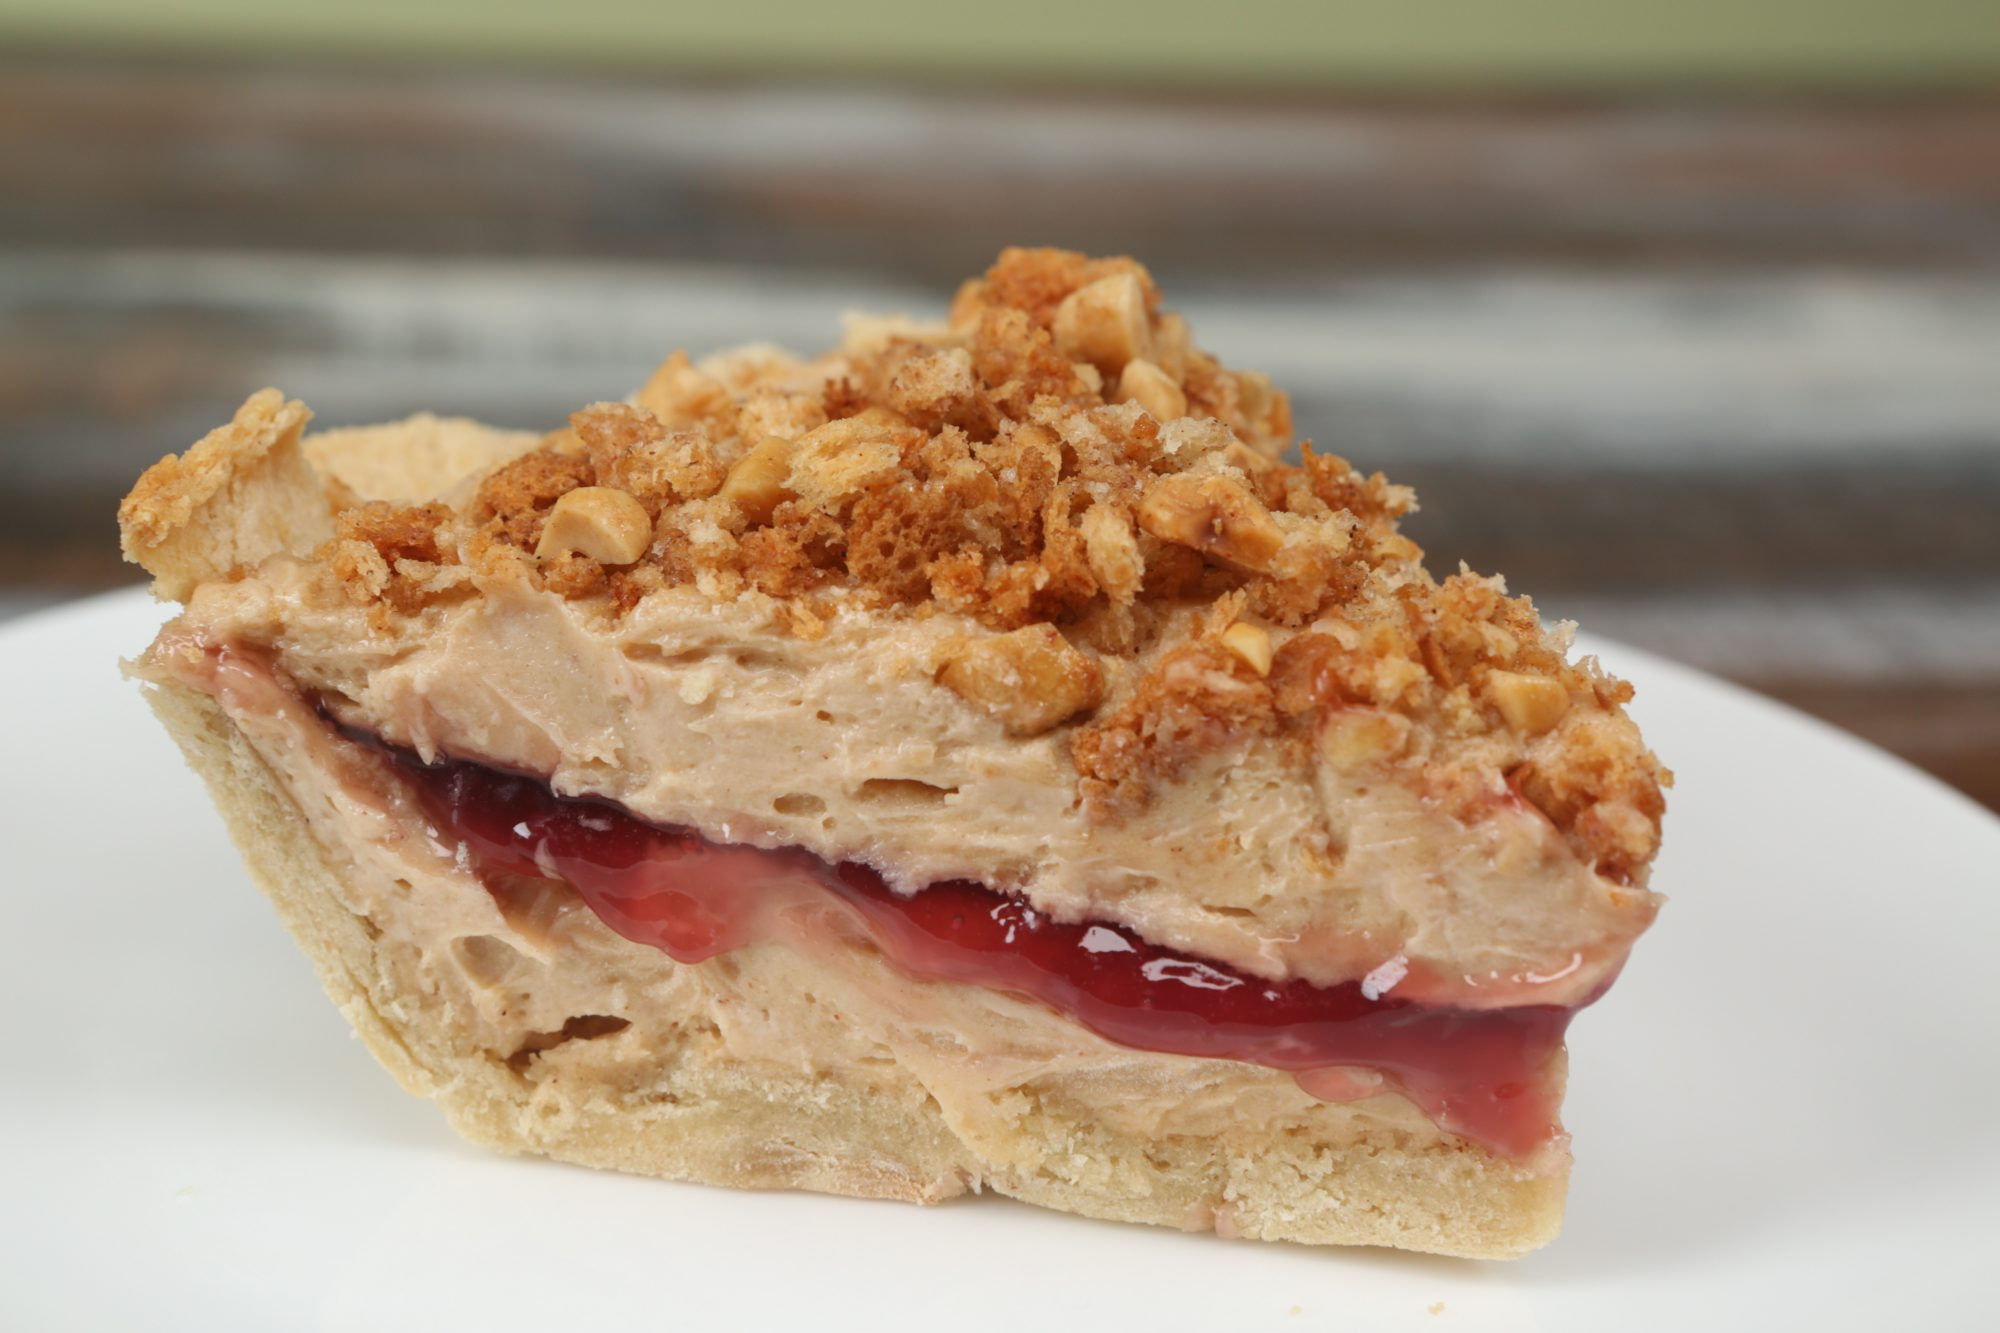 Peanut Butter and Jelly Sandwich Pie image